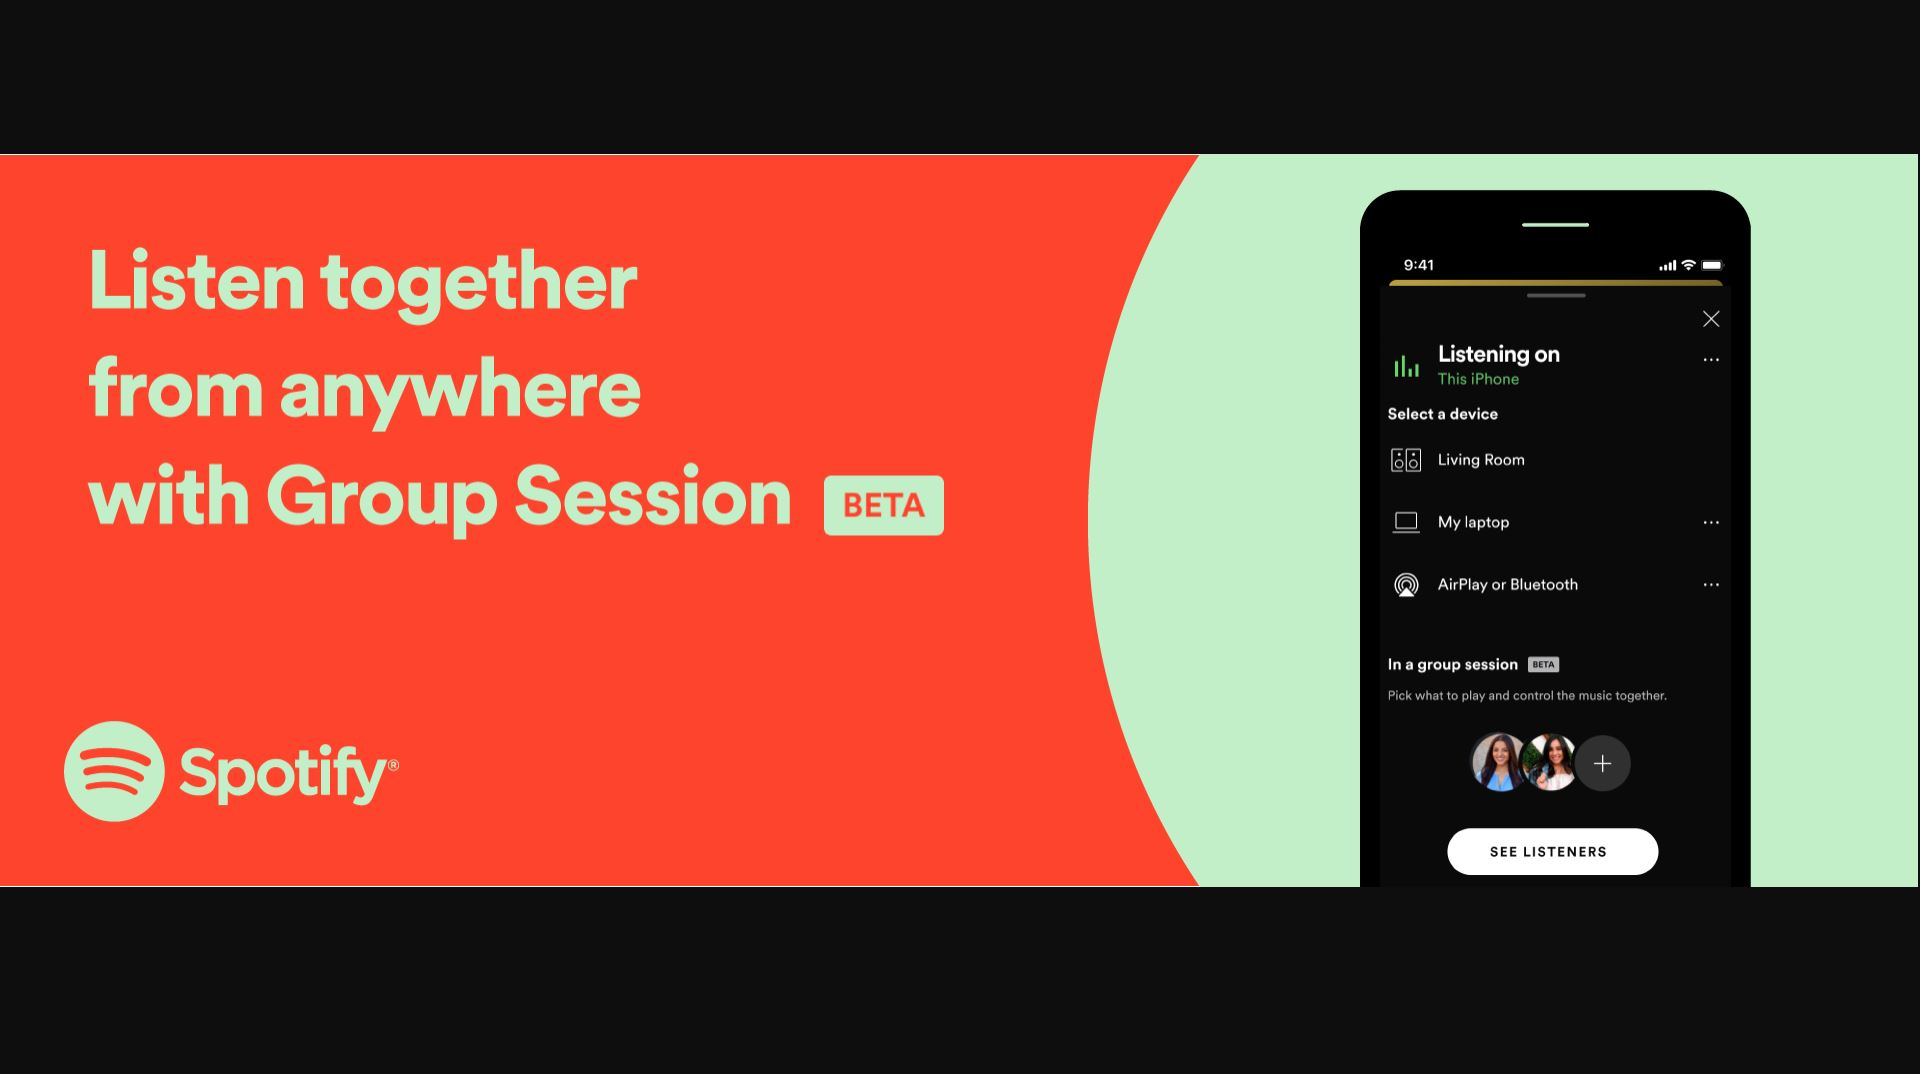 Spotify Technology SA : Loss Deepens Despite Subscriber, Podcast Growth